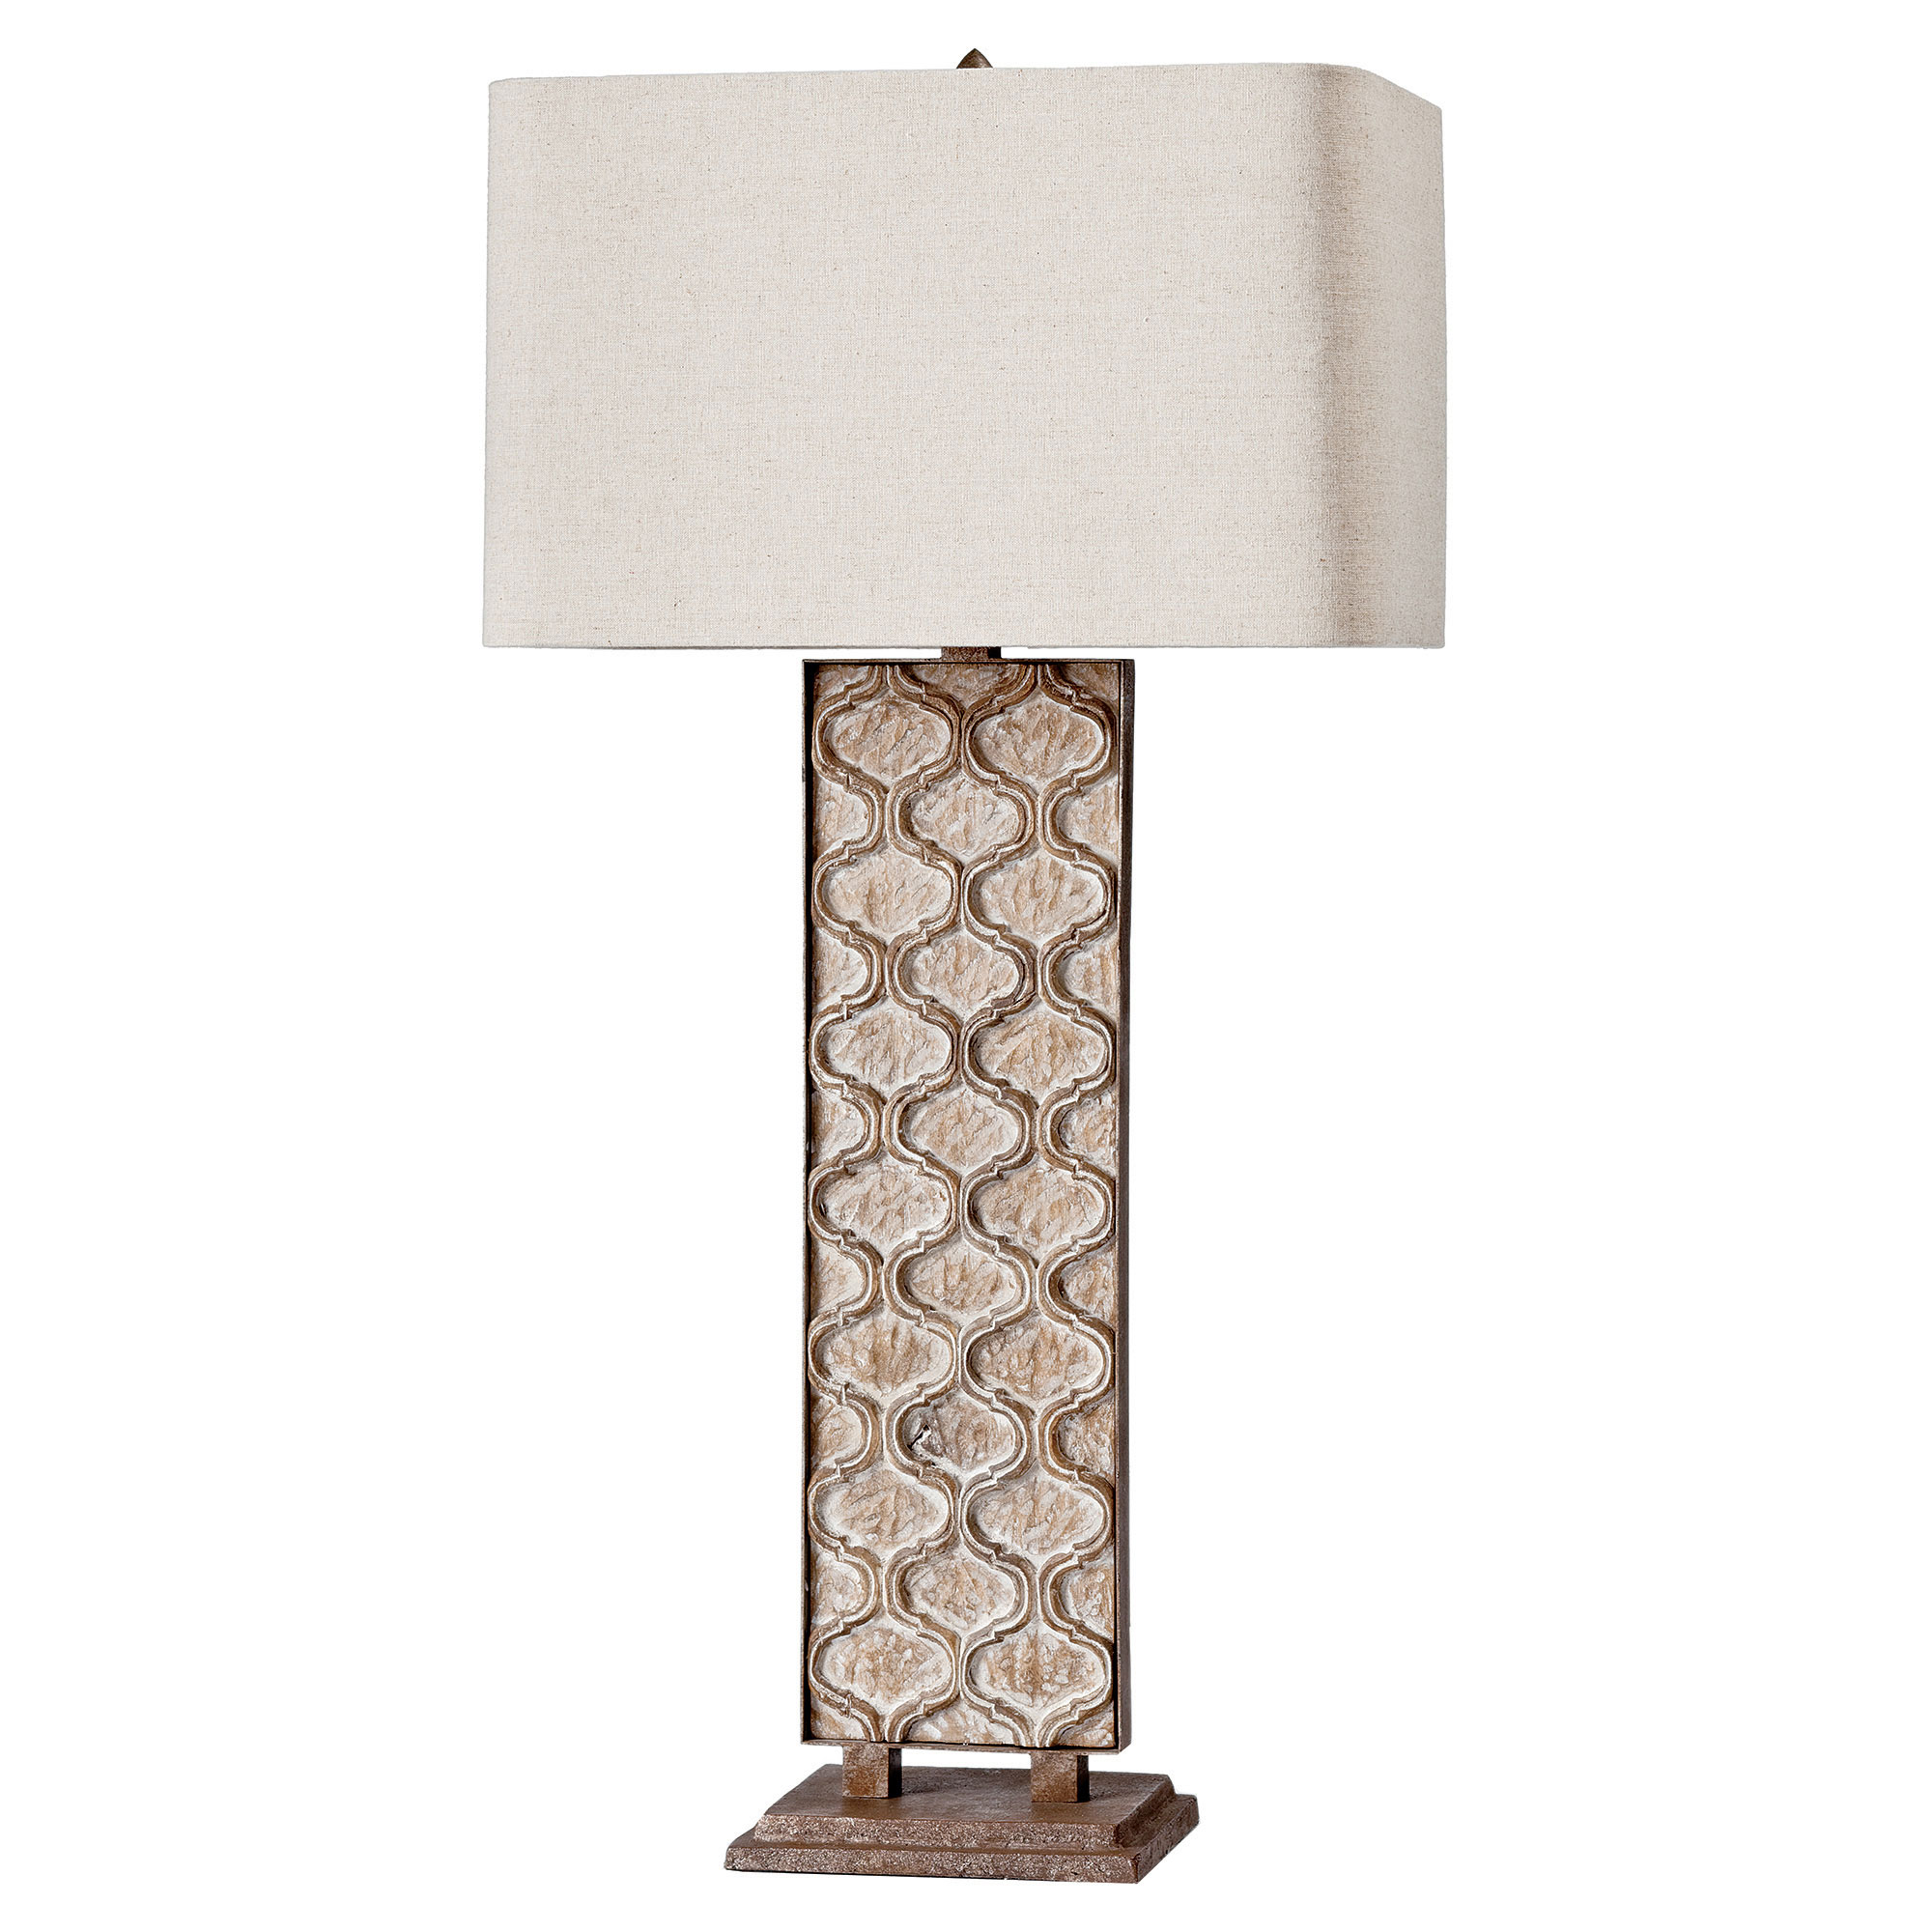 Sendak French Country Rustic Panel Table Lamp